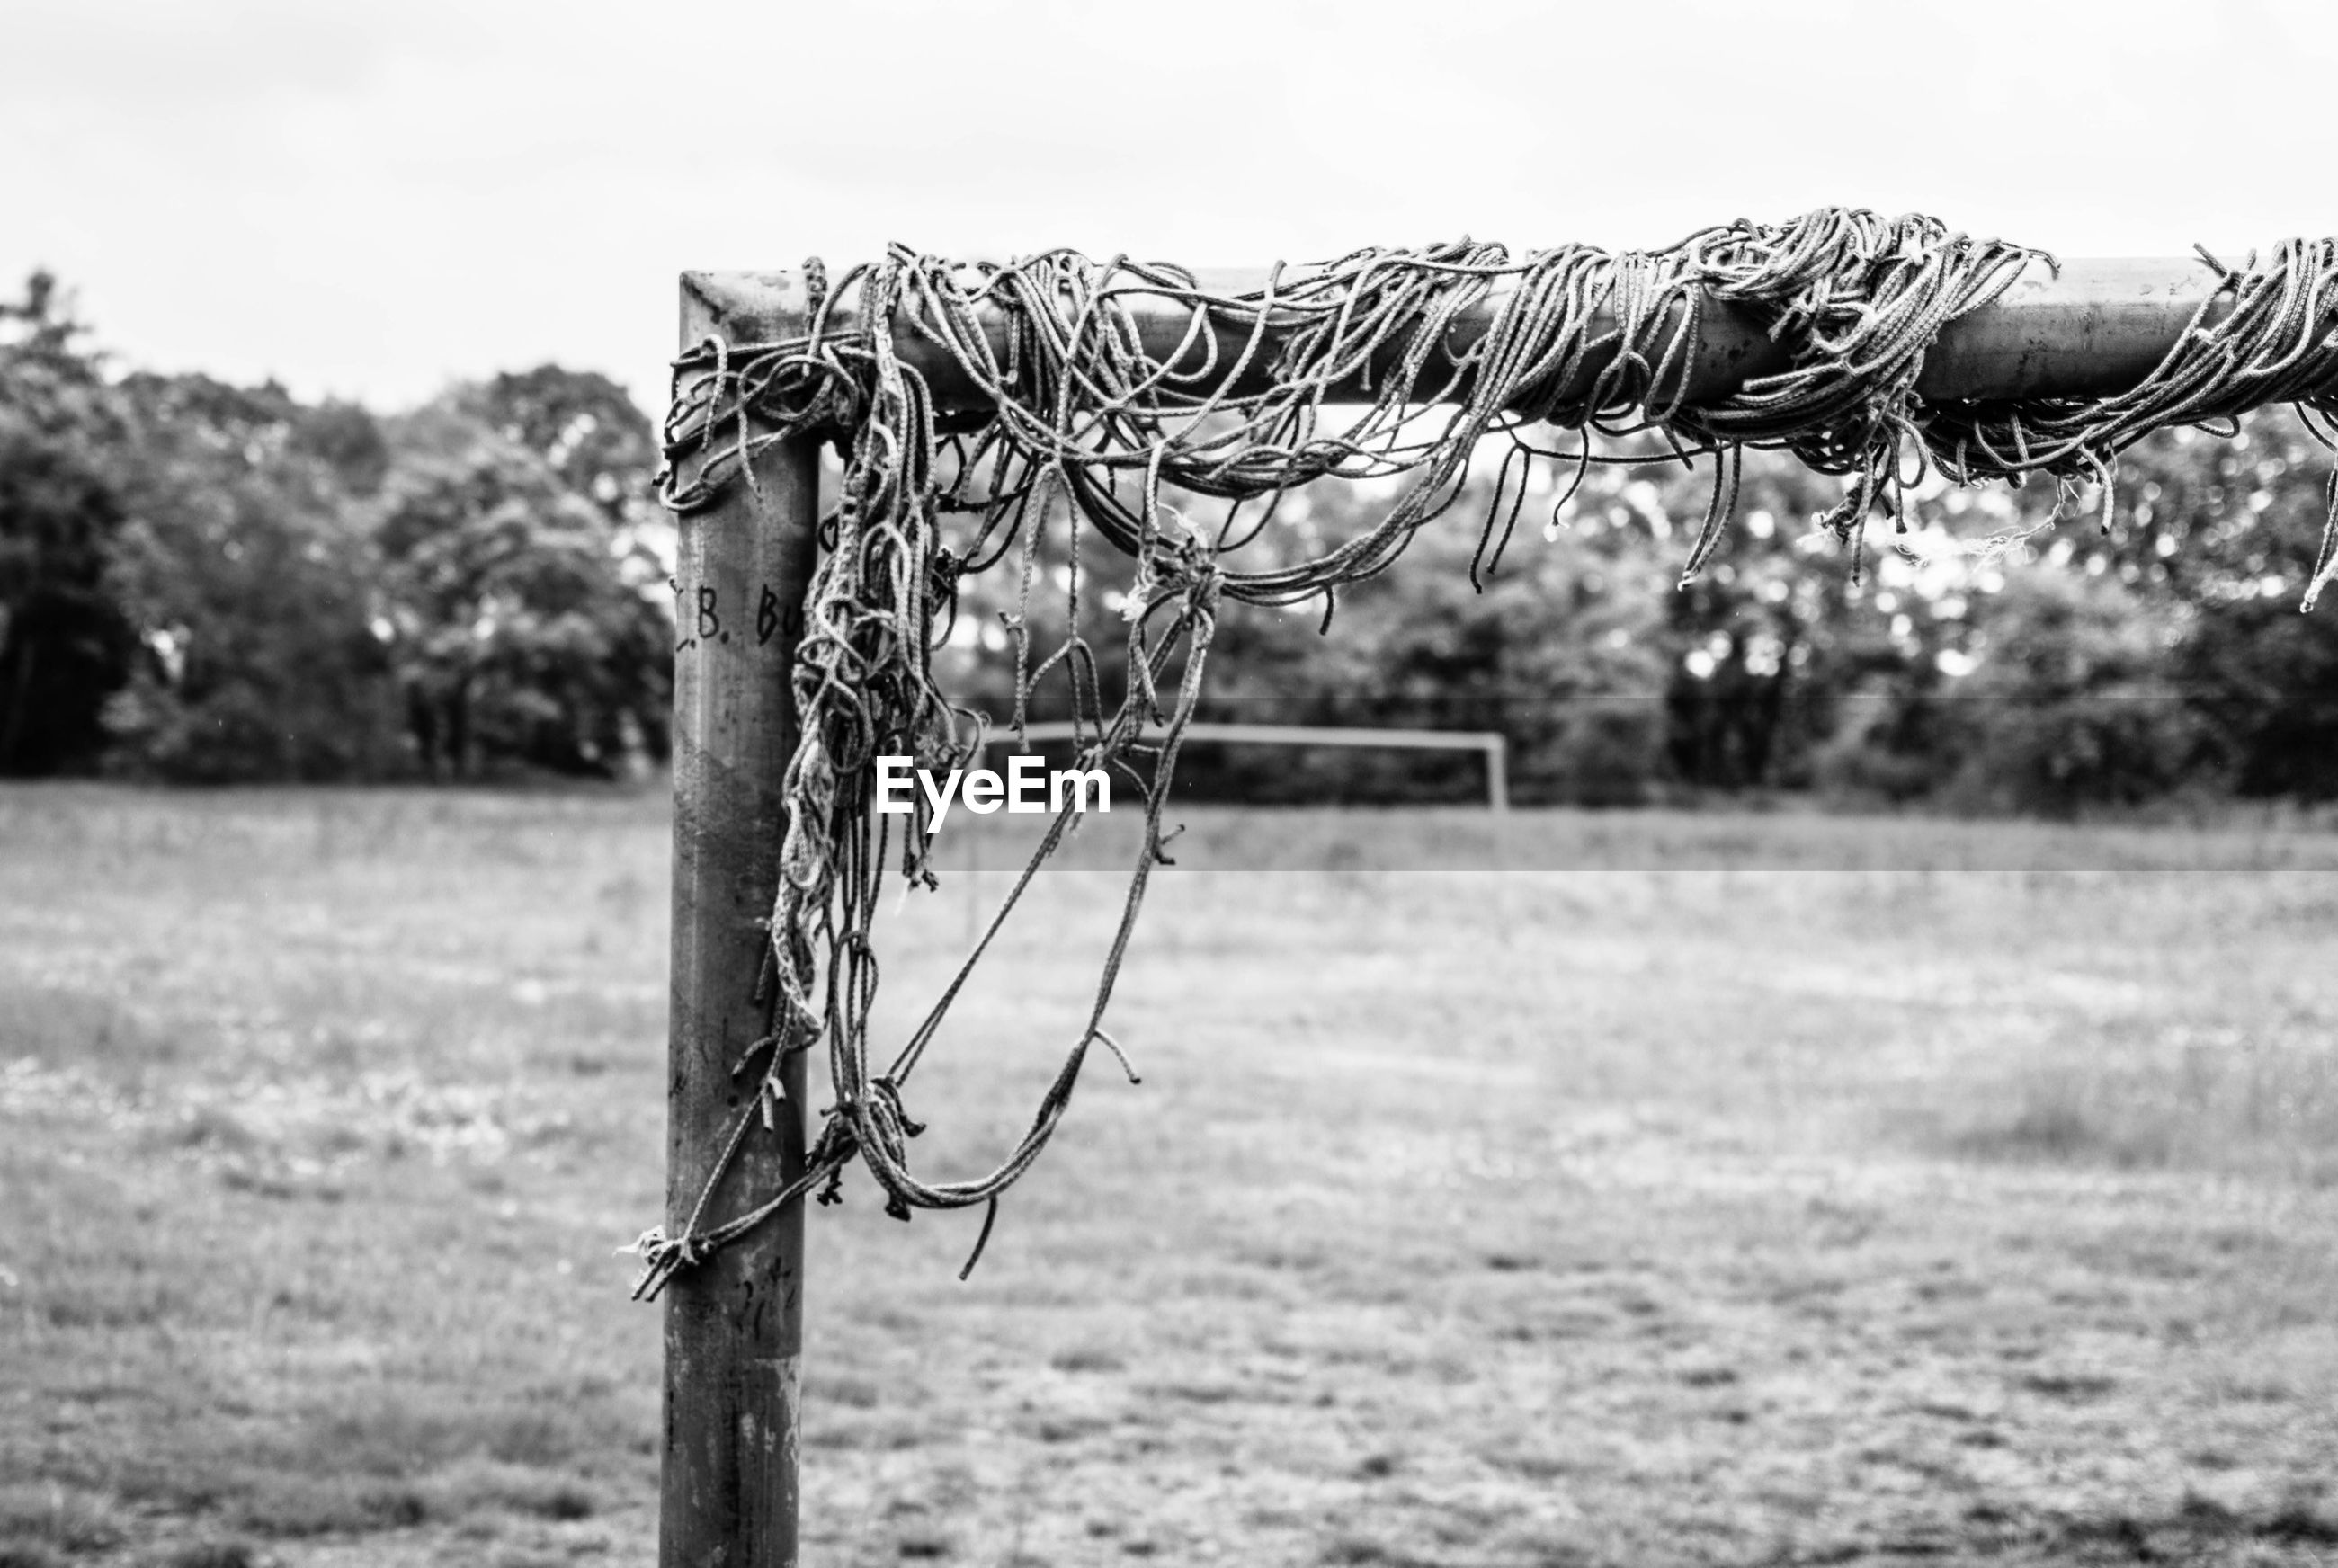 focus on foreground, field, grass, close-up, landscape, sky, dry, nature, tree, barbed wire, day, tranquility, outdoors, selective focus, clear sky, tranquil scene, bare tree, no people, rural scene, fence